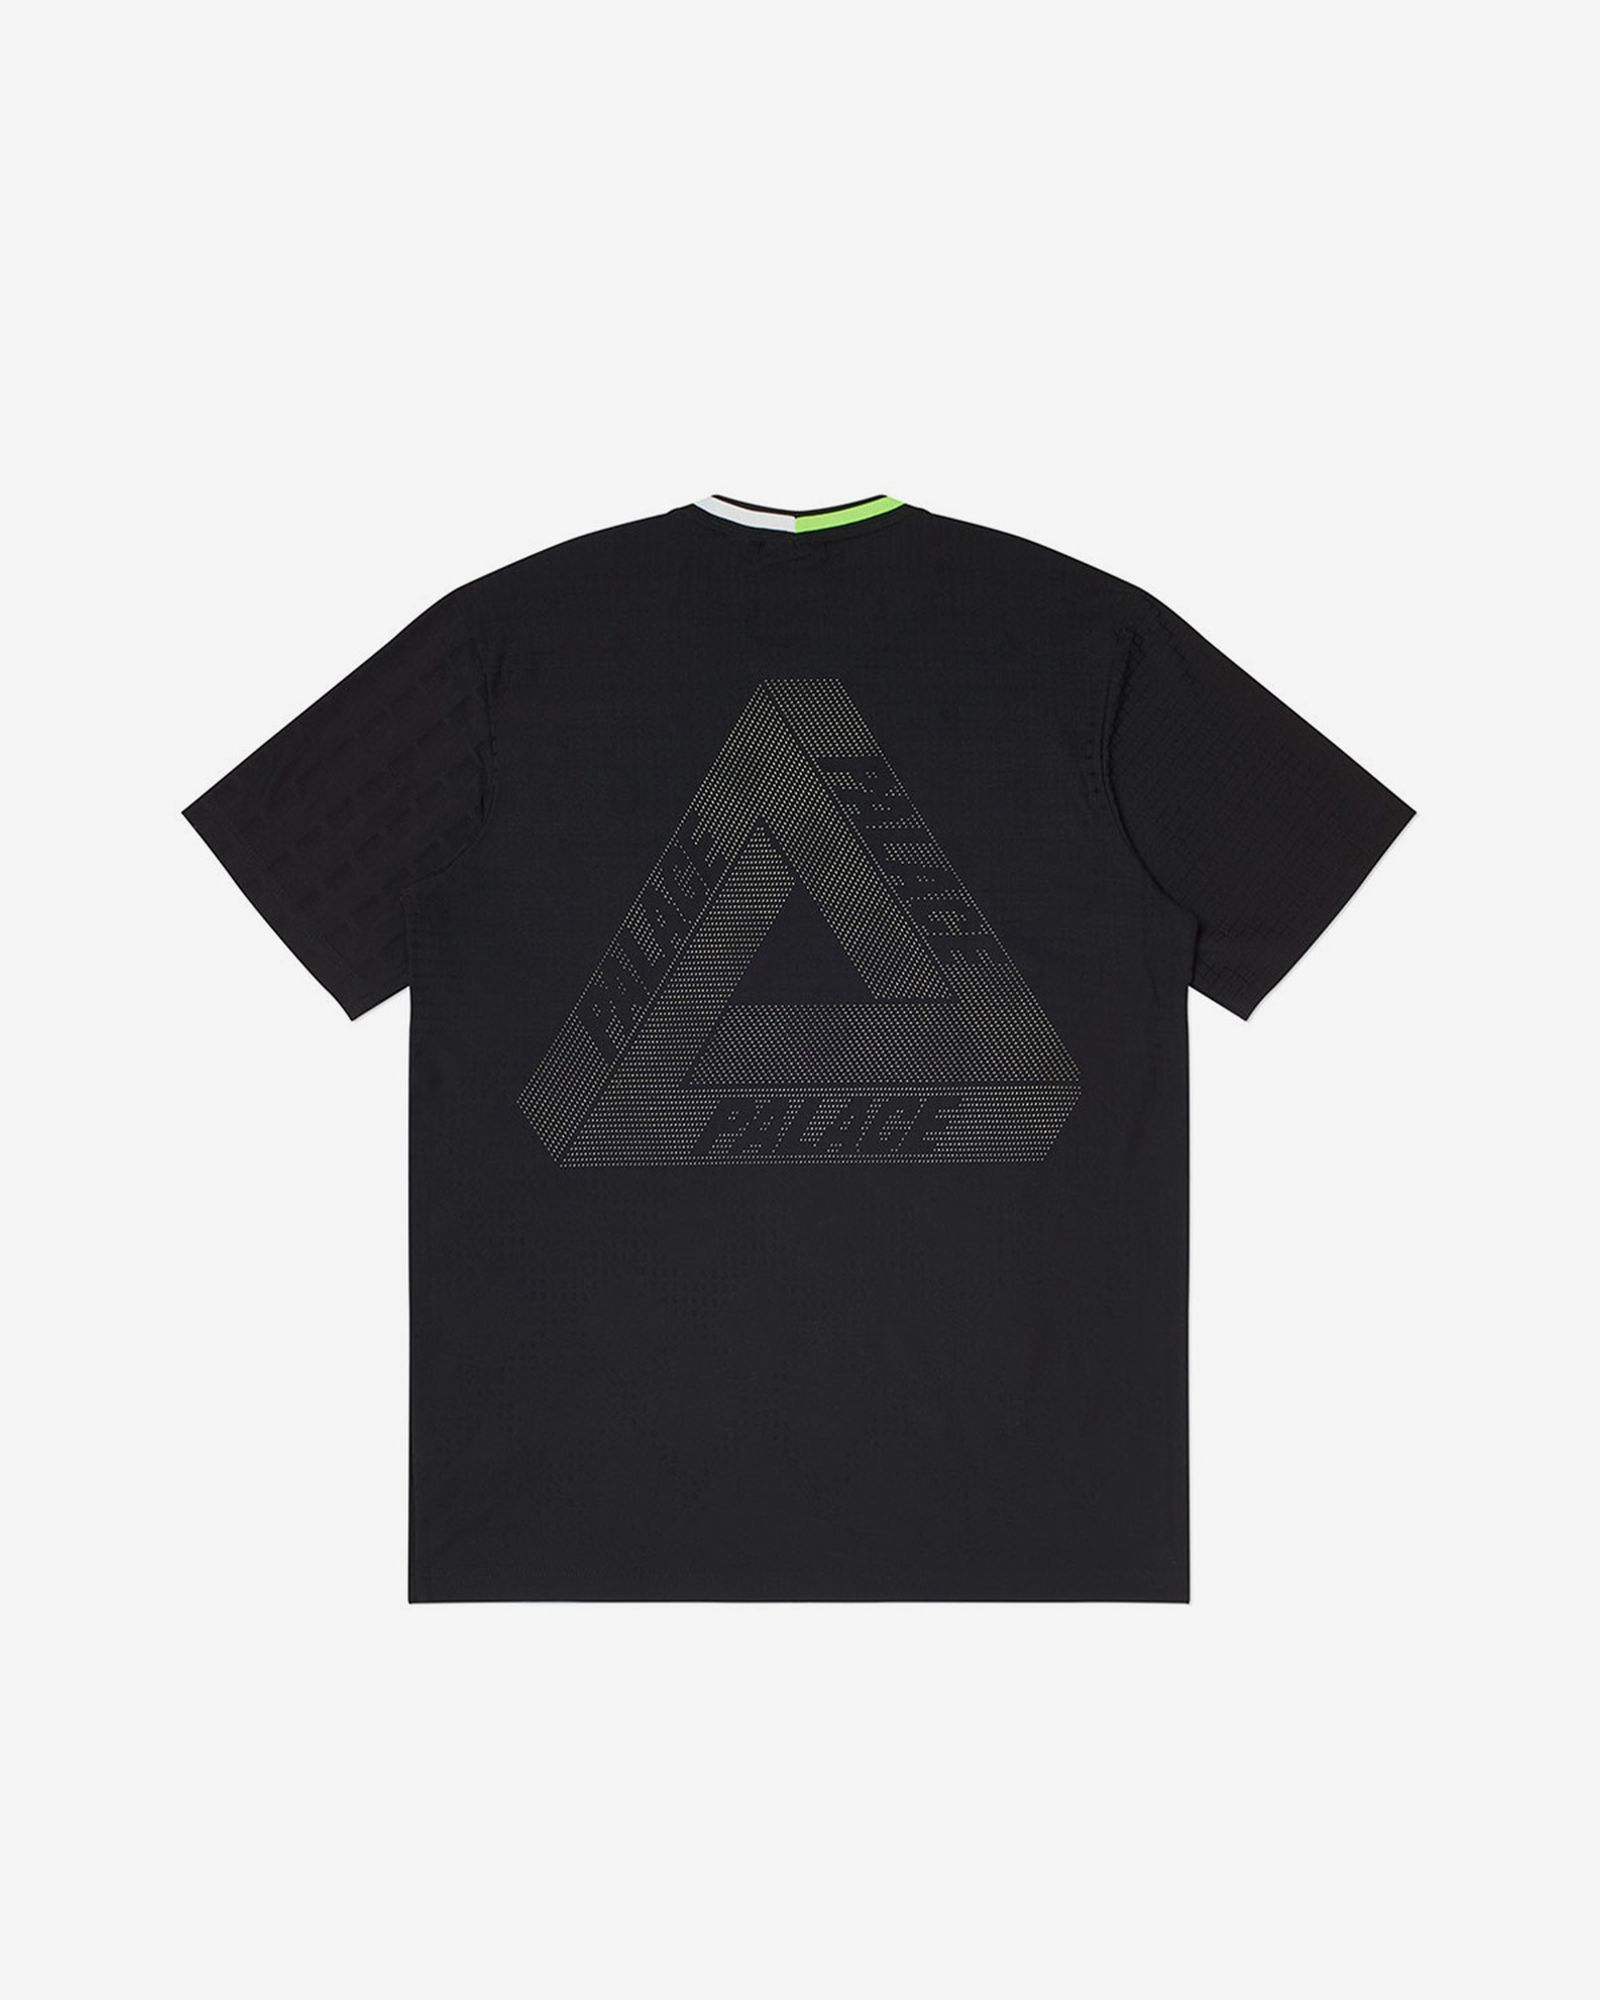 palace-adidas-golf-collaboration-official-look-02